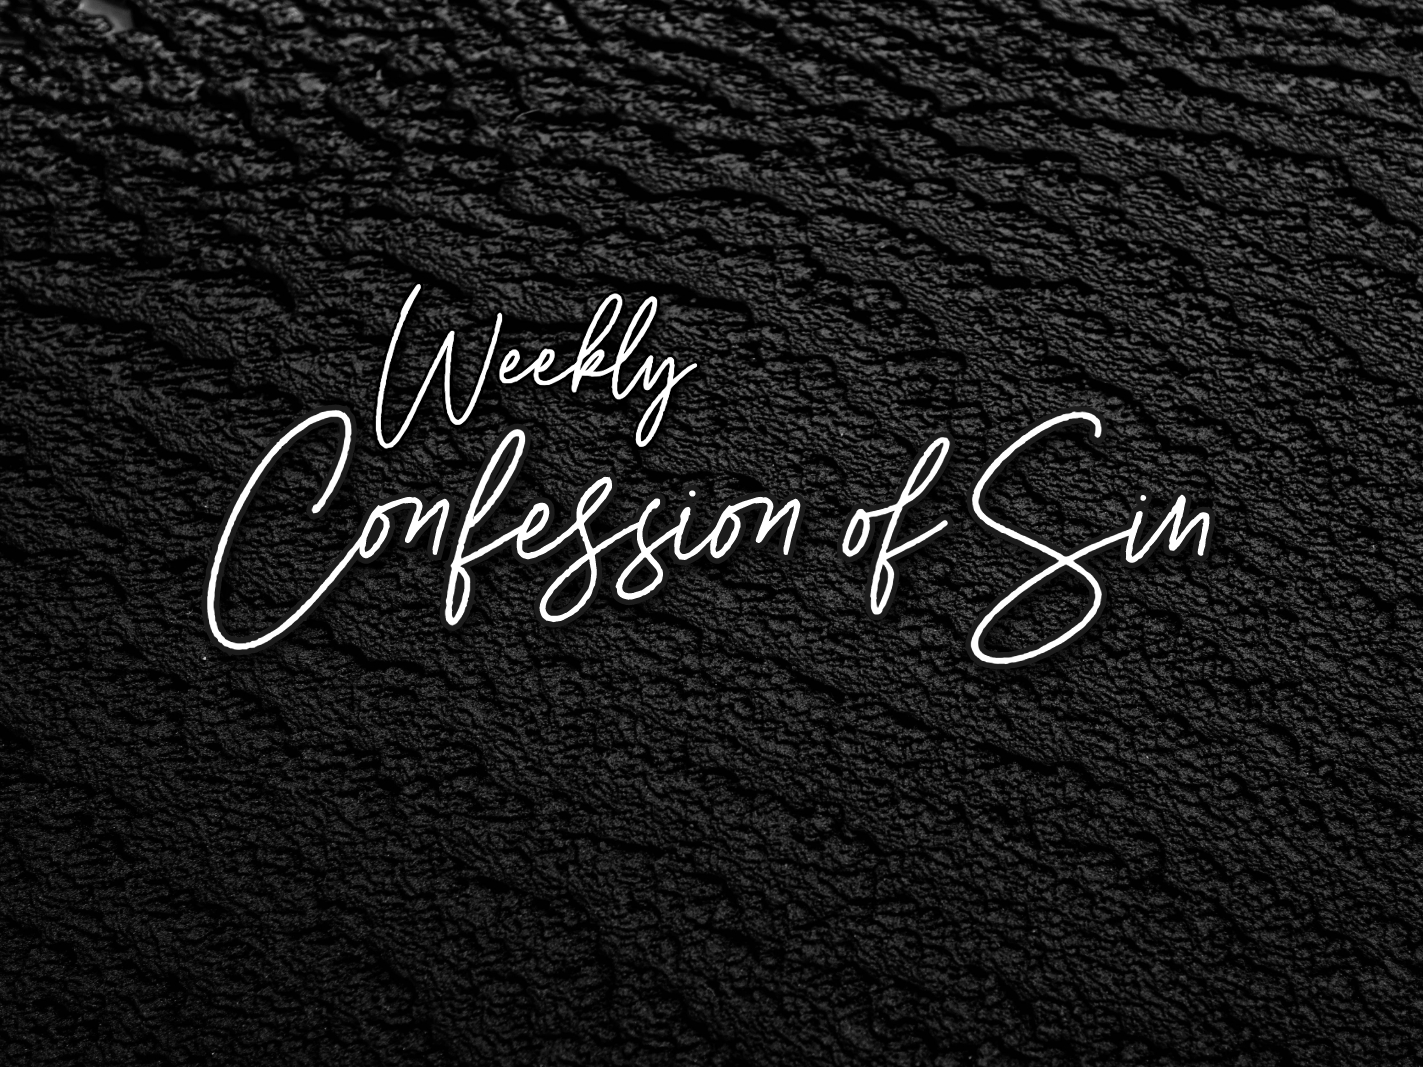 Weekly Confession of Sin 2020